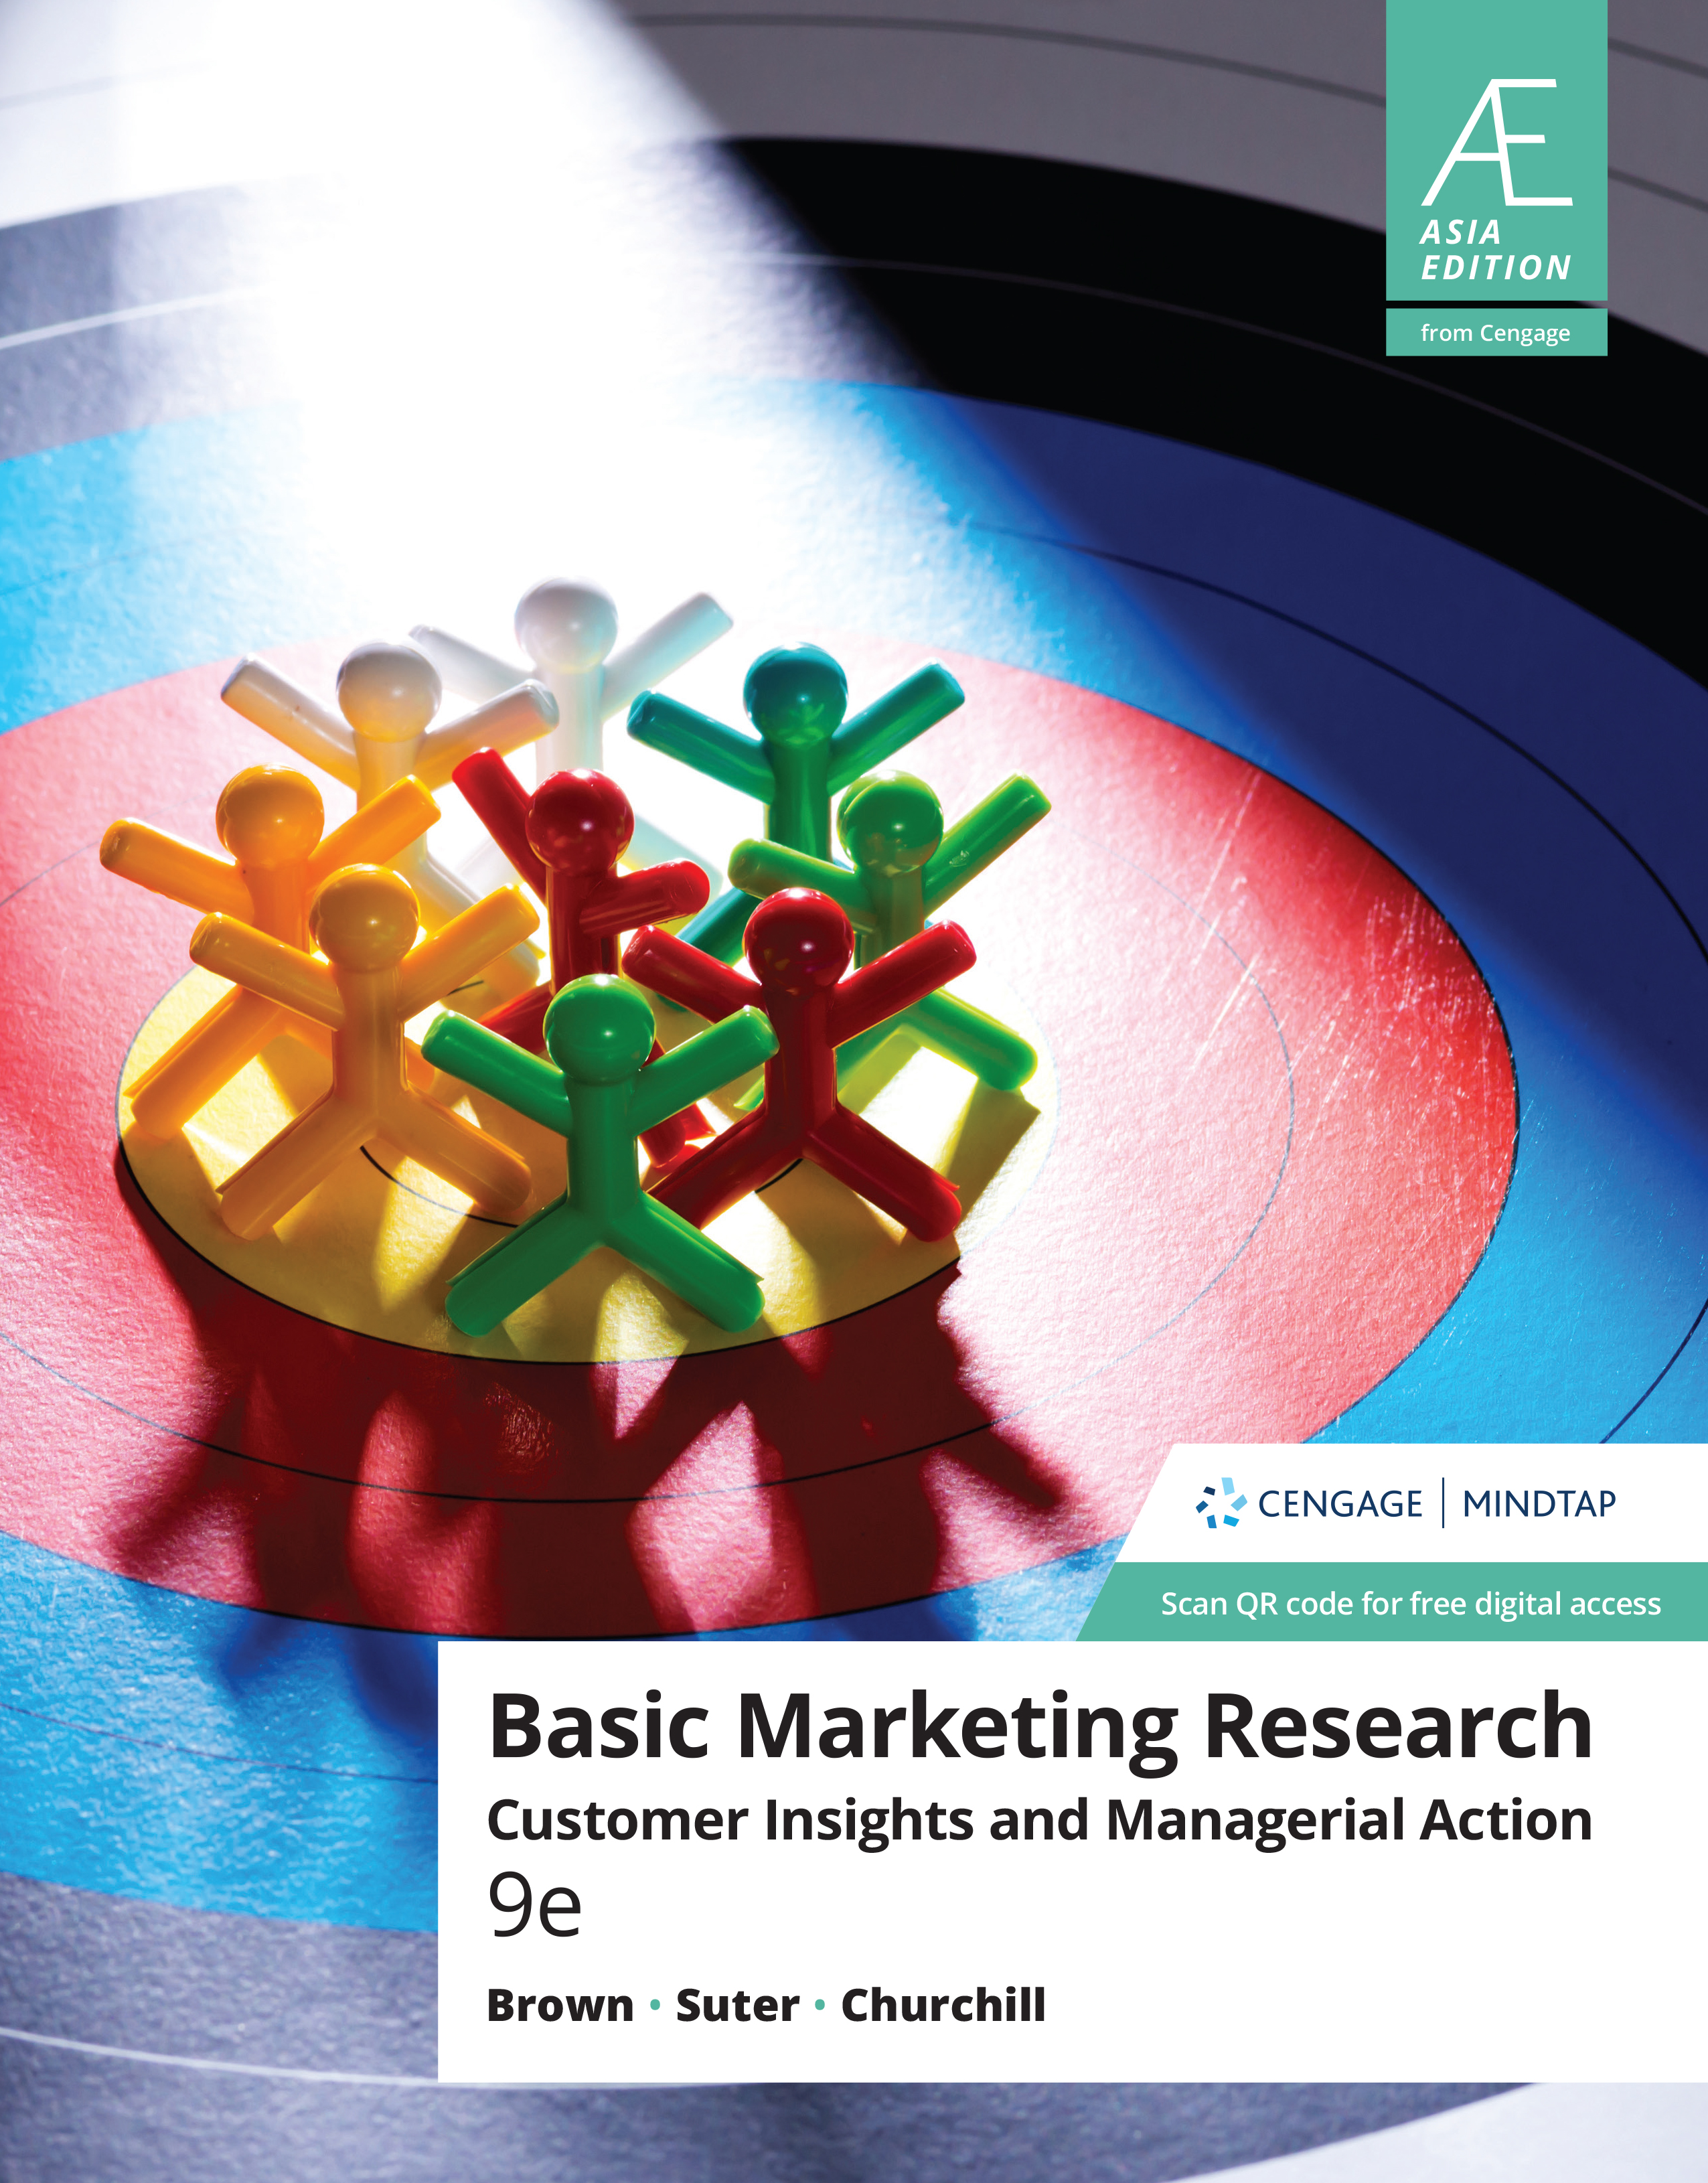 AE Basic Marketing Research: Customer Insights and Managerial Action